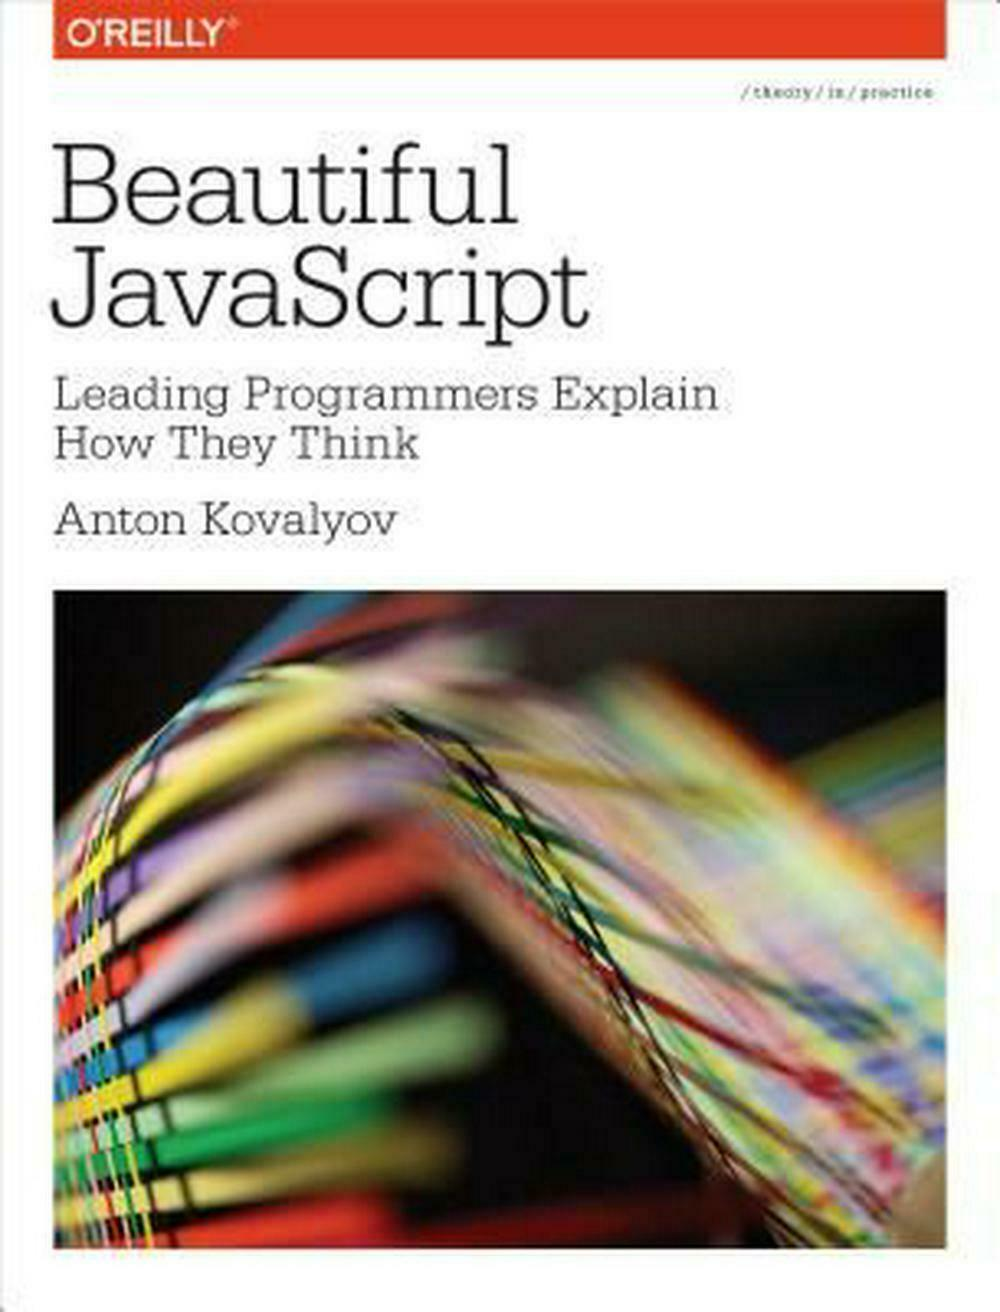 Beautiful JavaScript: Leading Programmers Explain How They Think by Anton Kovaly |